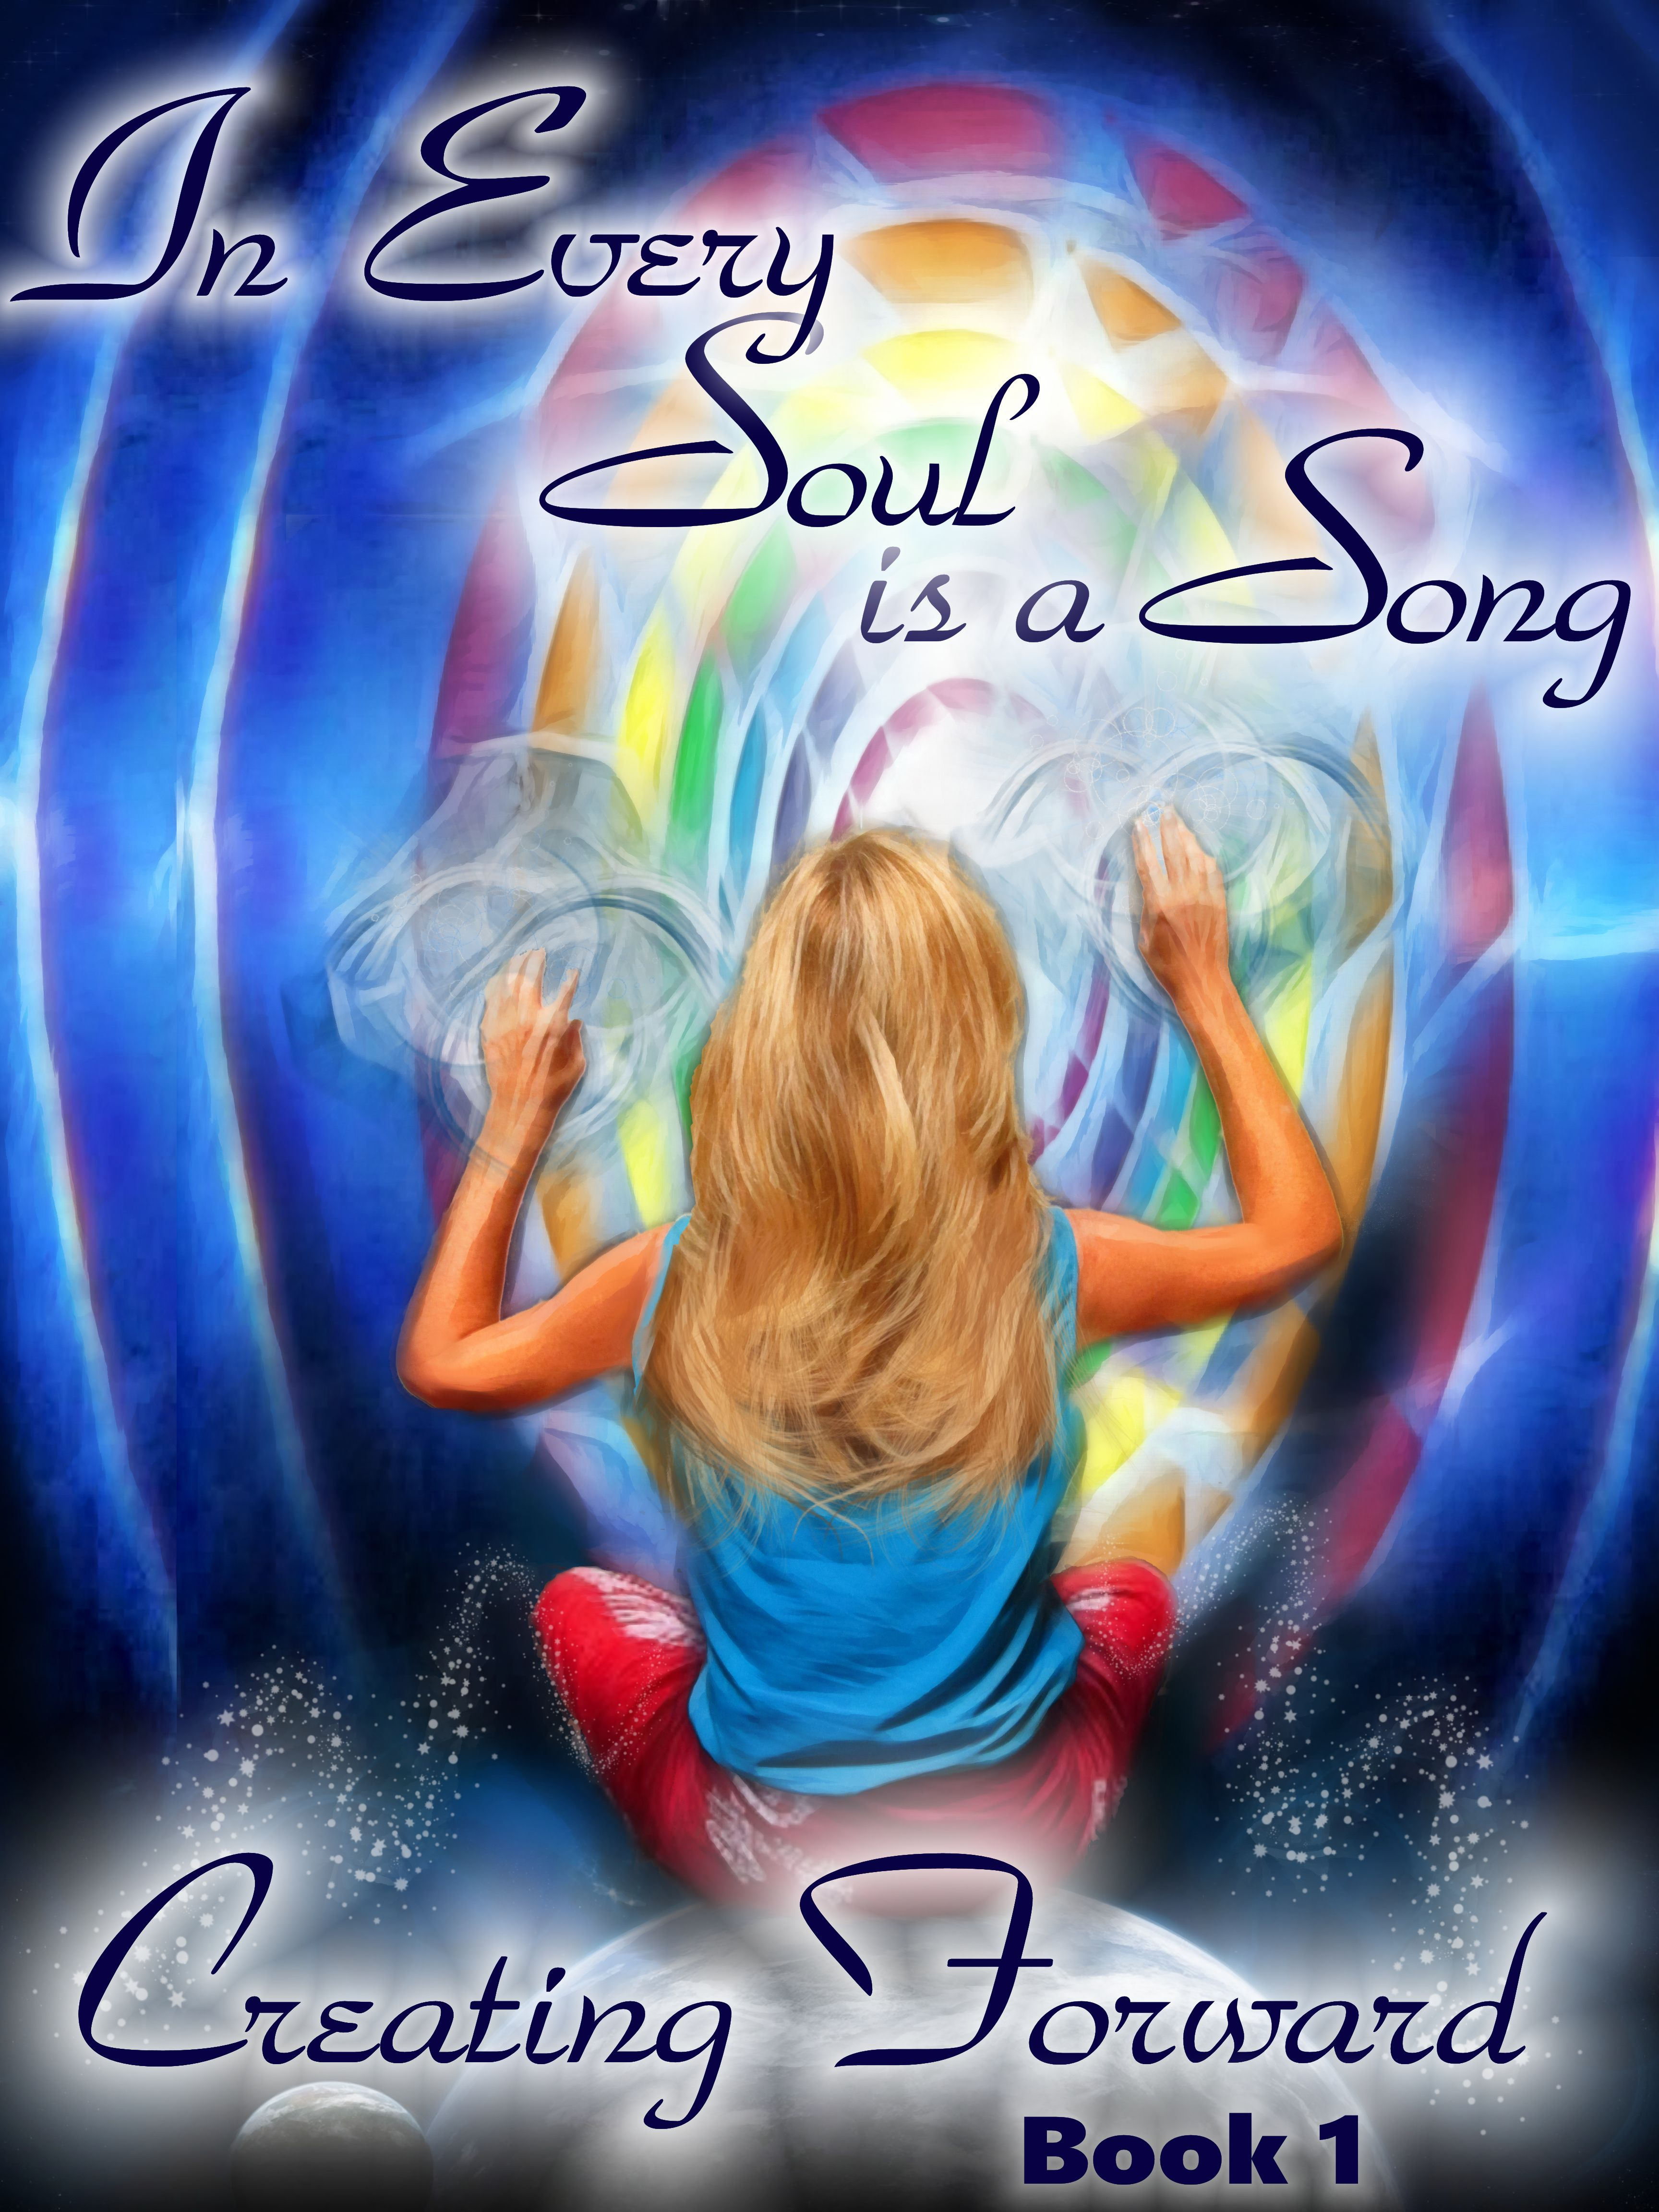 In_Every_Soul_is_a_Song_Cover